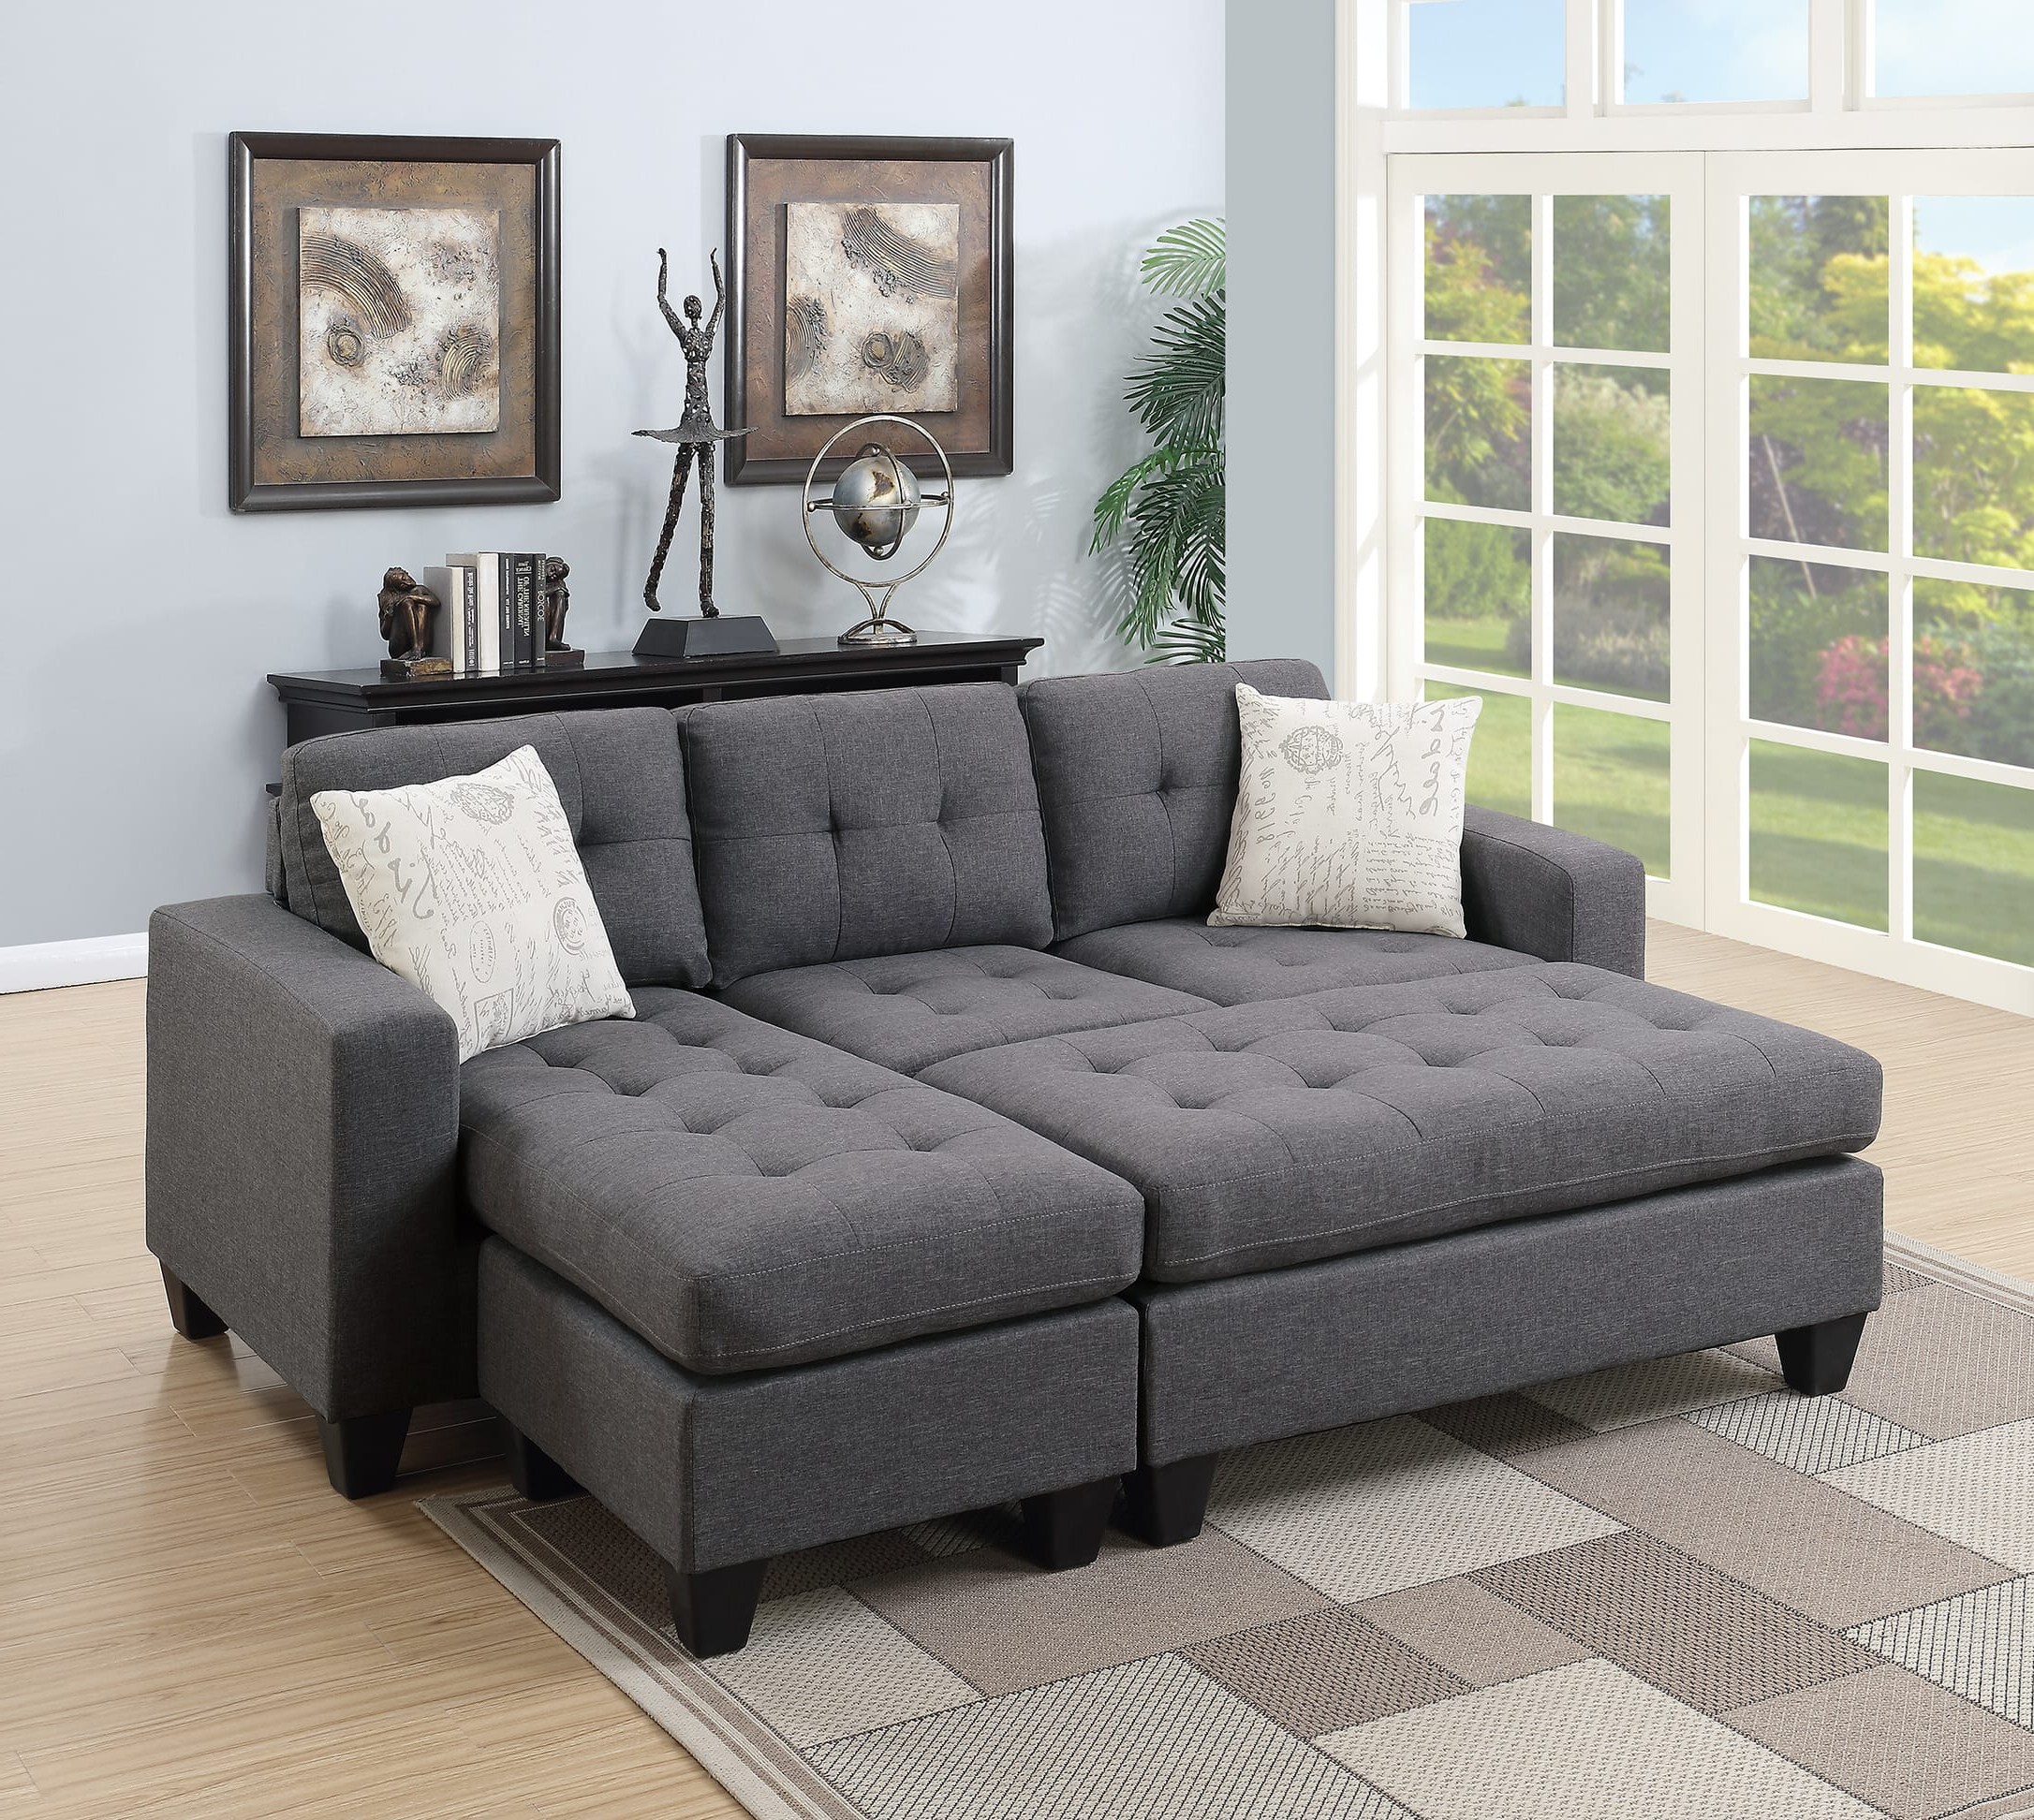 Molnar Upholstered Sectional Sofas Blue/gray Within Preferred F6920 Blue Gray Sectional Sofa Setpoundex (View 4 of 20)